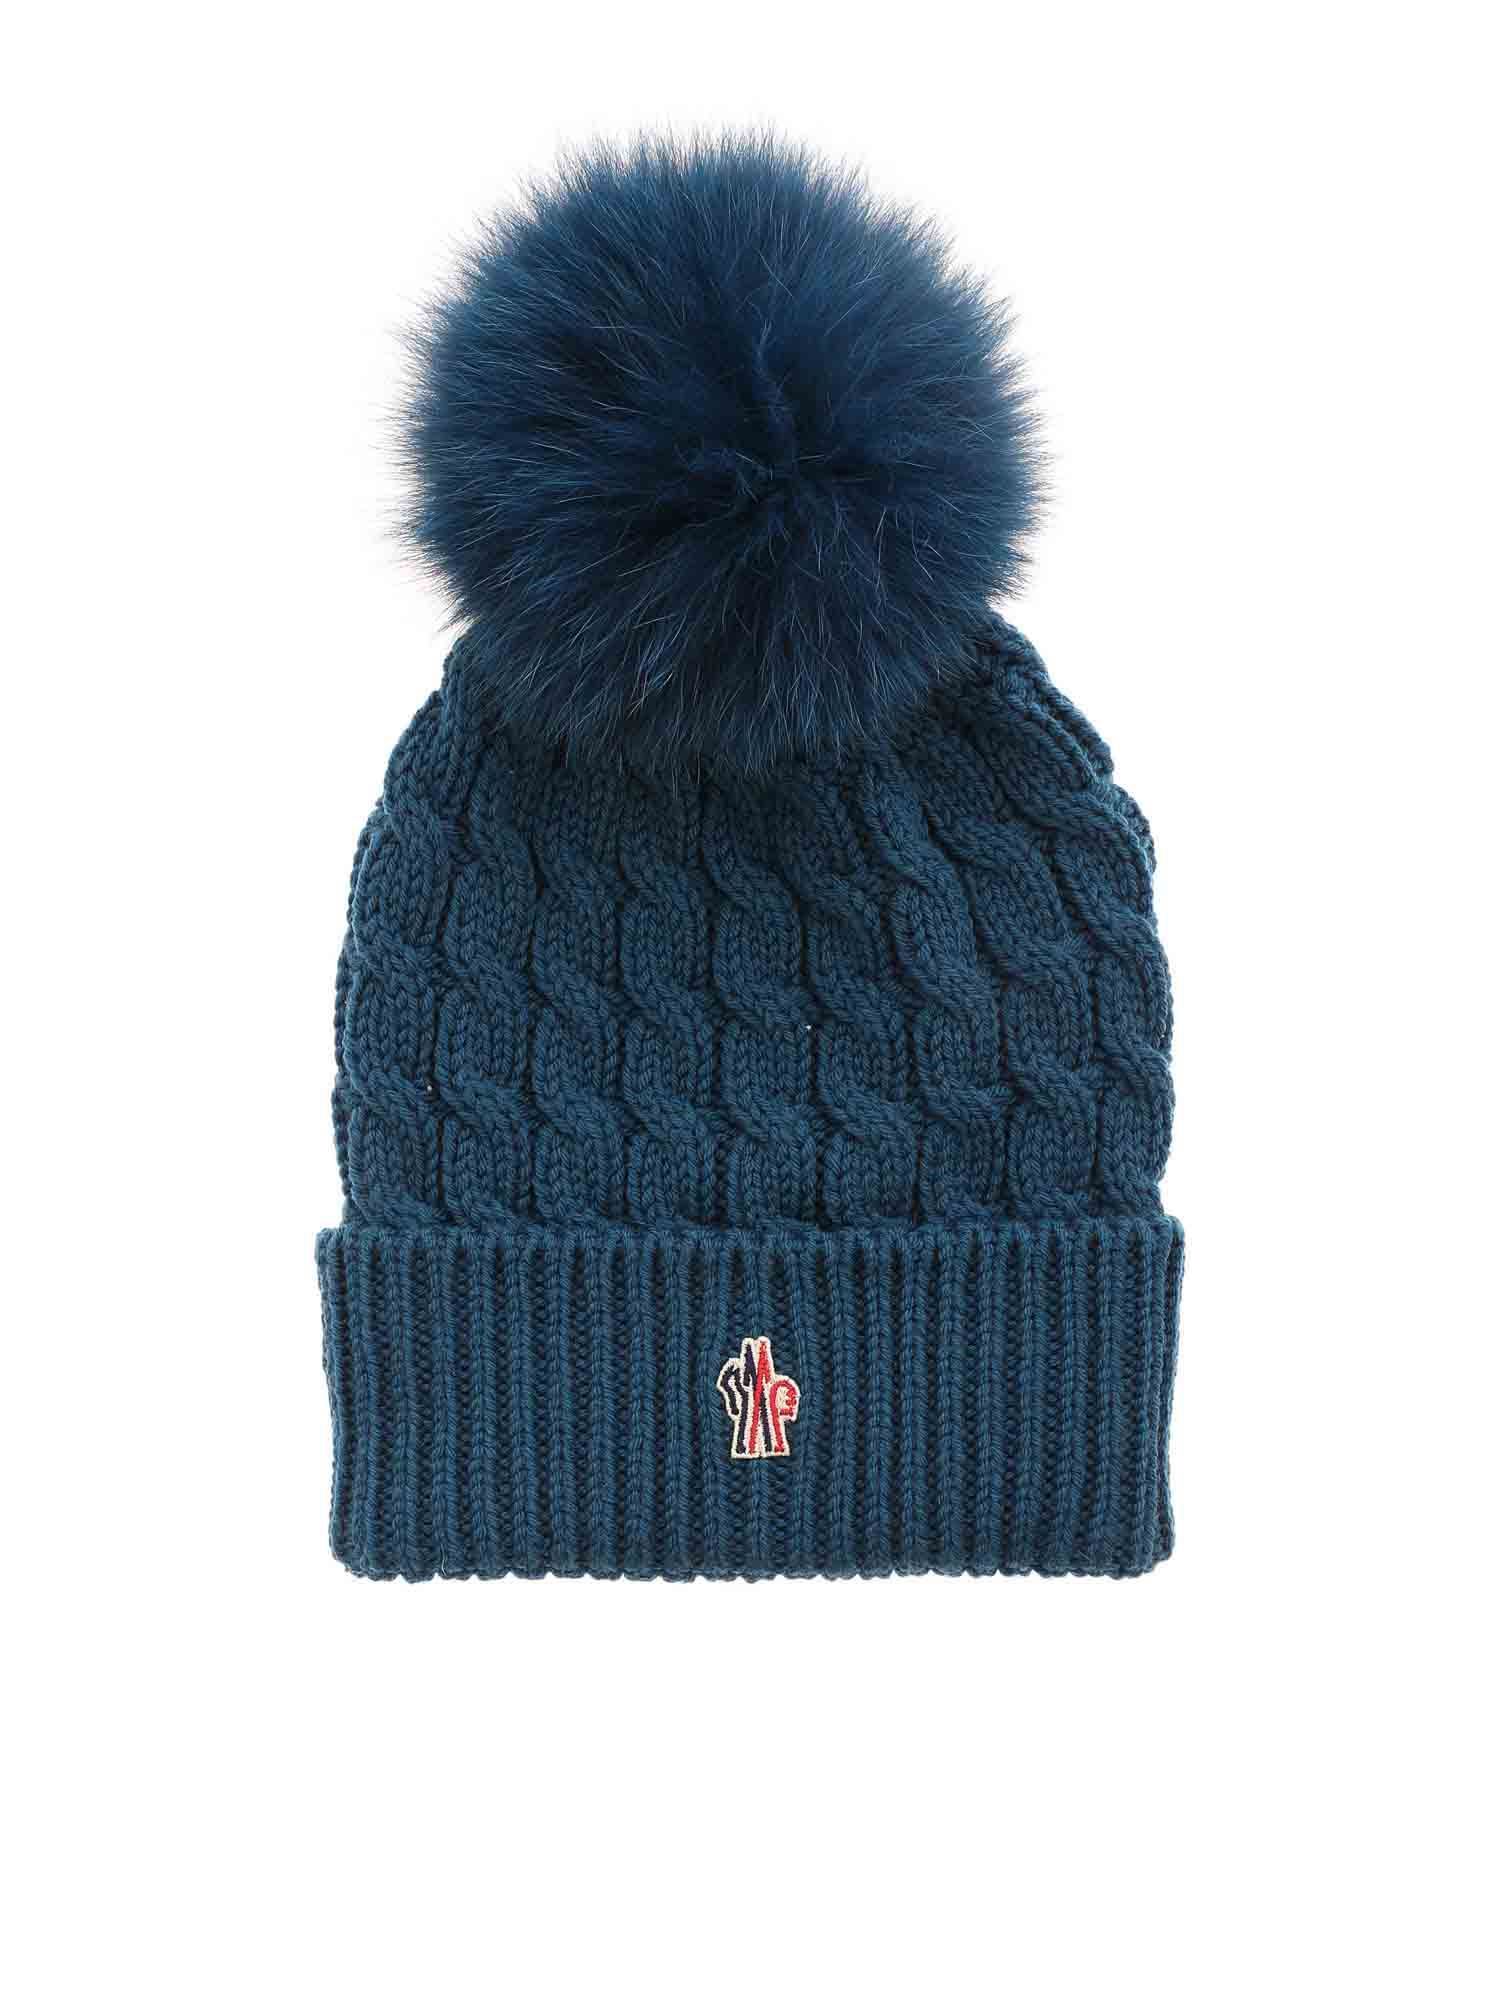 Moncler Grenoble RIBBED BEANIE IN BLUE-GREEN